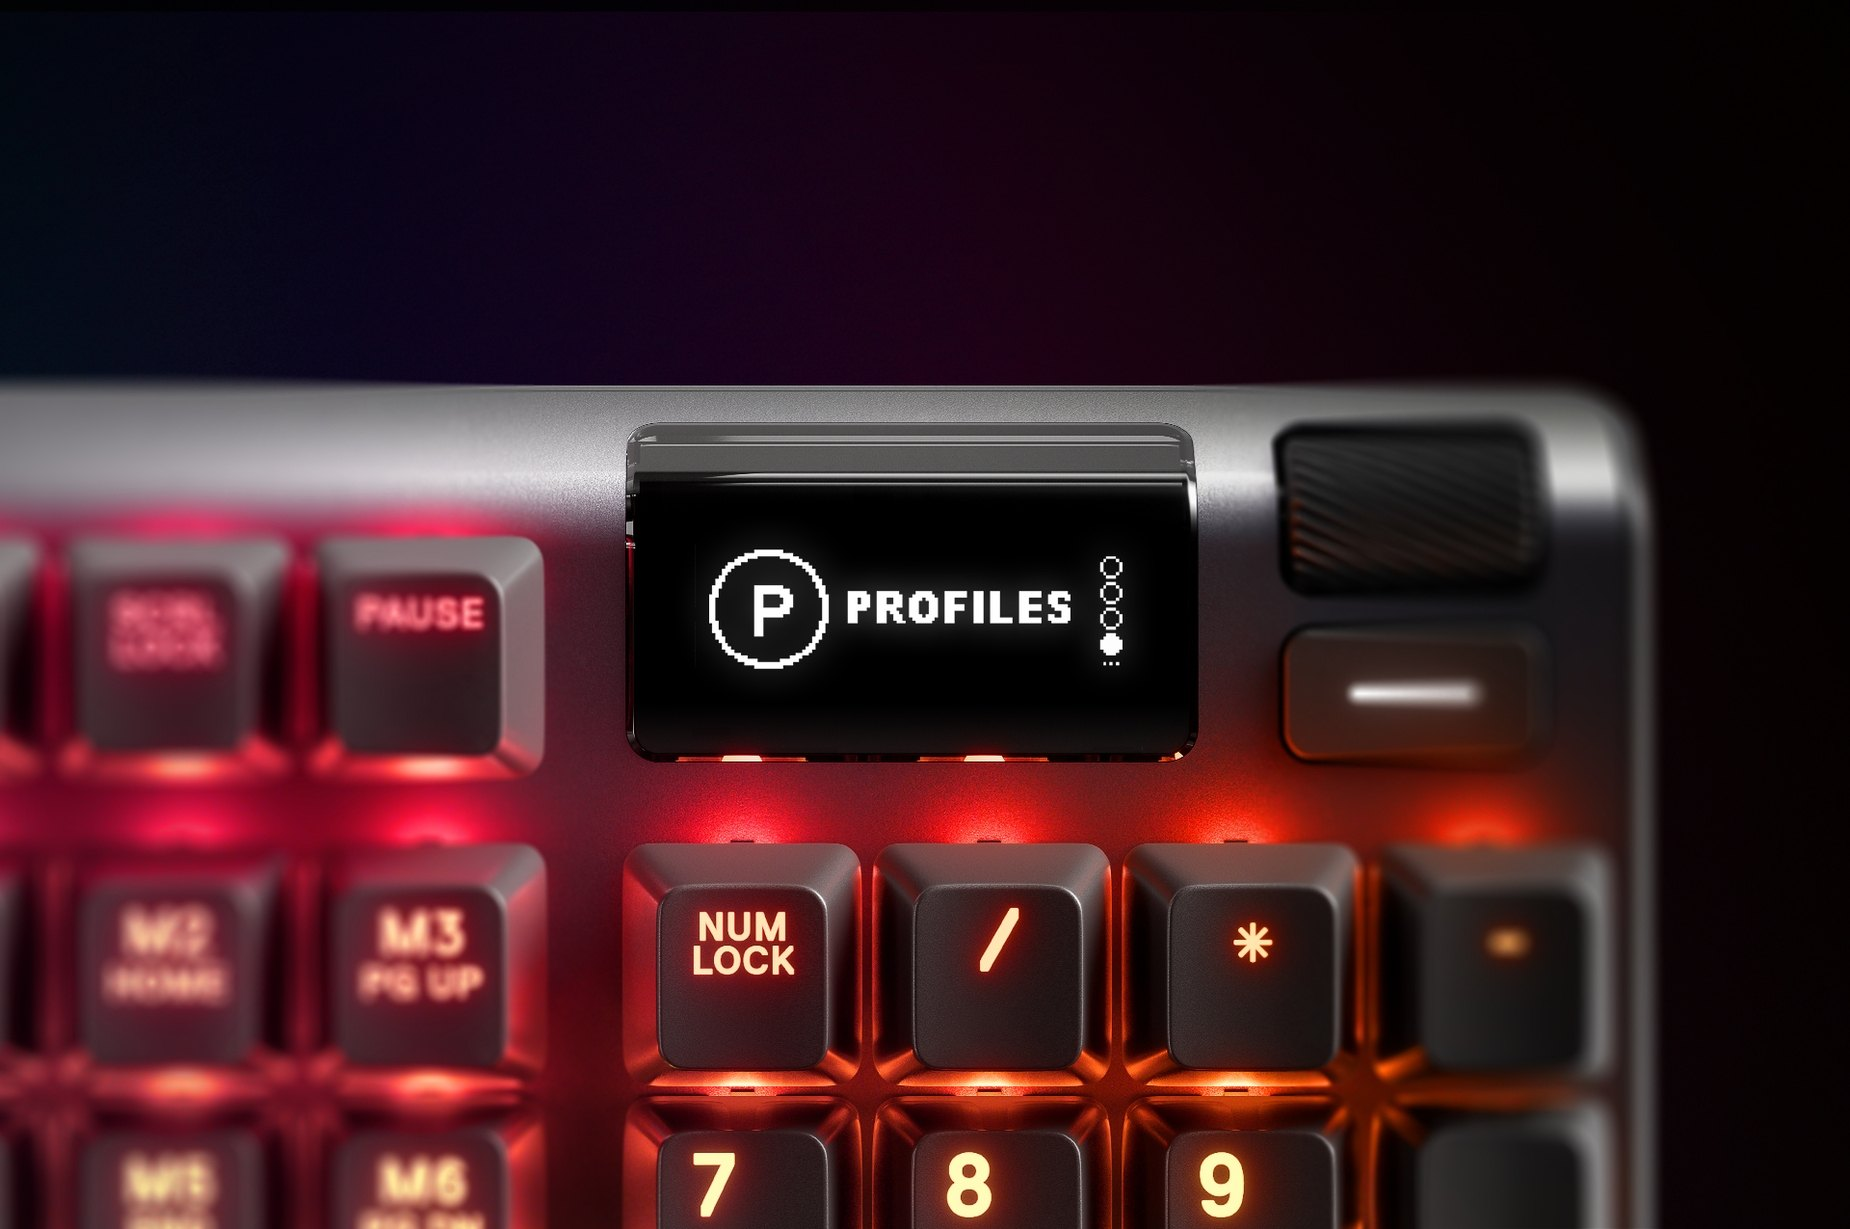 Zoomed in view of the multimedia control and volume roller on the Apex 5 gaming keyboard